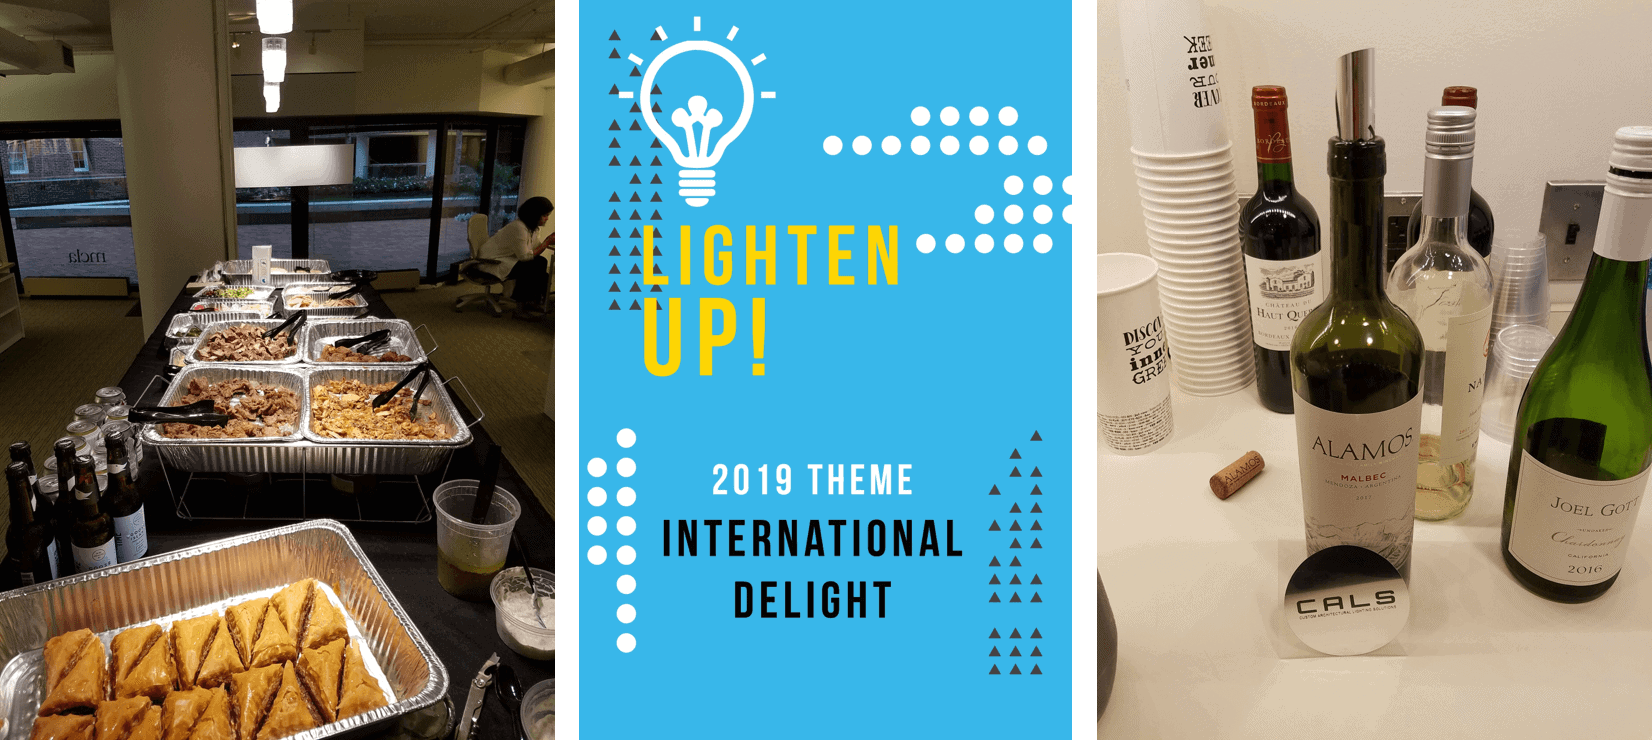 food and beverages at Lighten Up! 2019 design competition